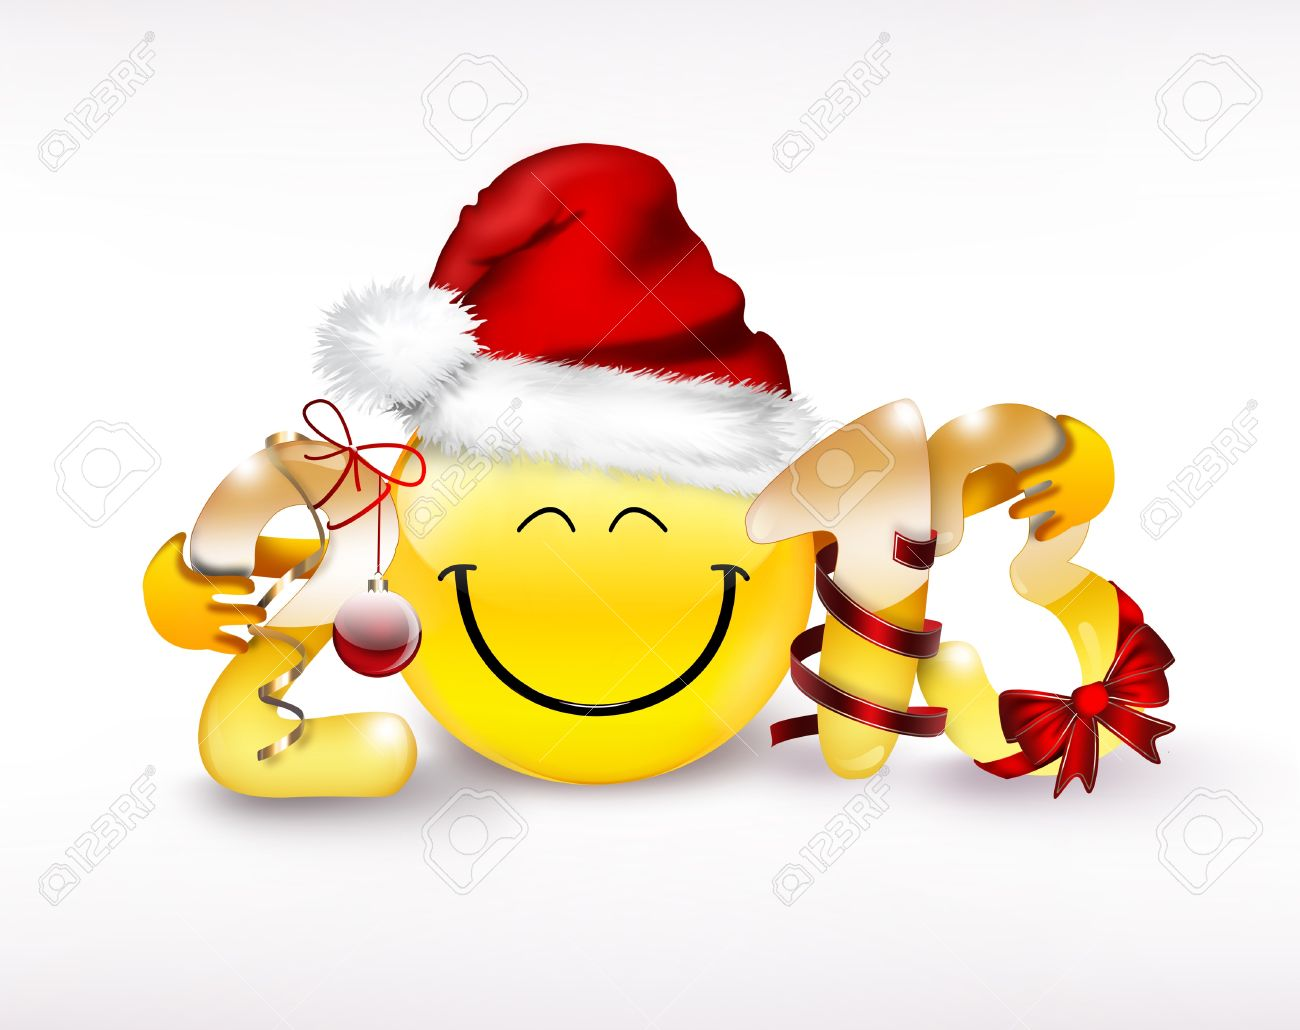 New Year Concept With Emoticon Stock Photo, Picture And Royalty ...